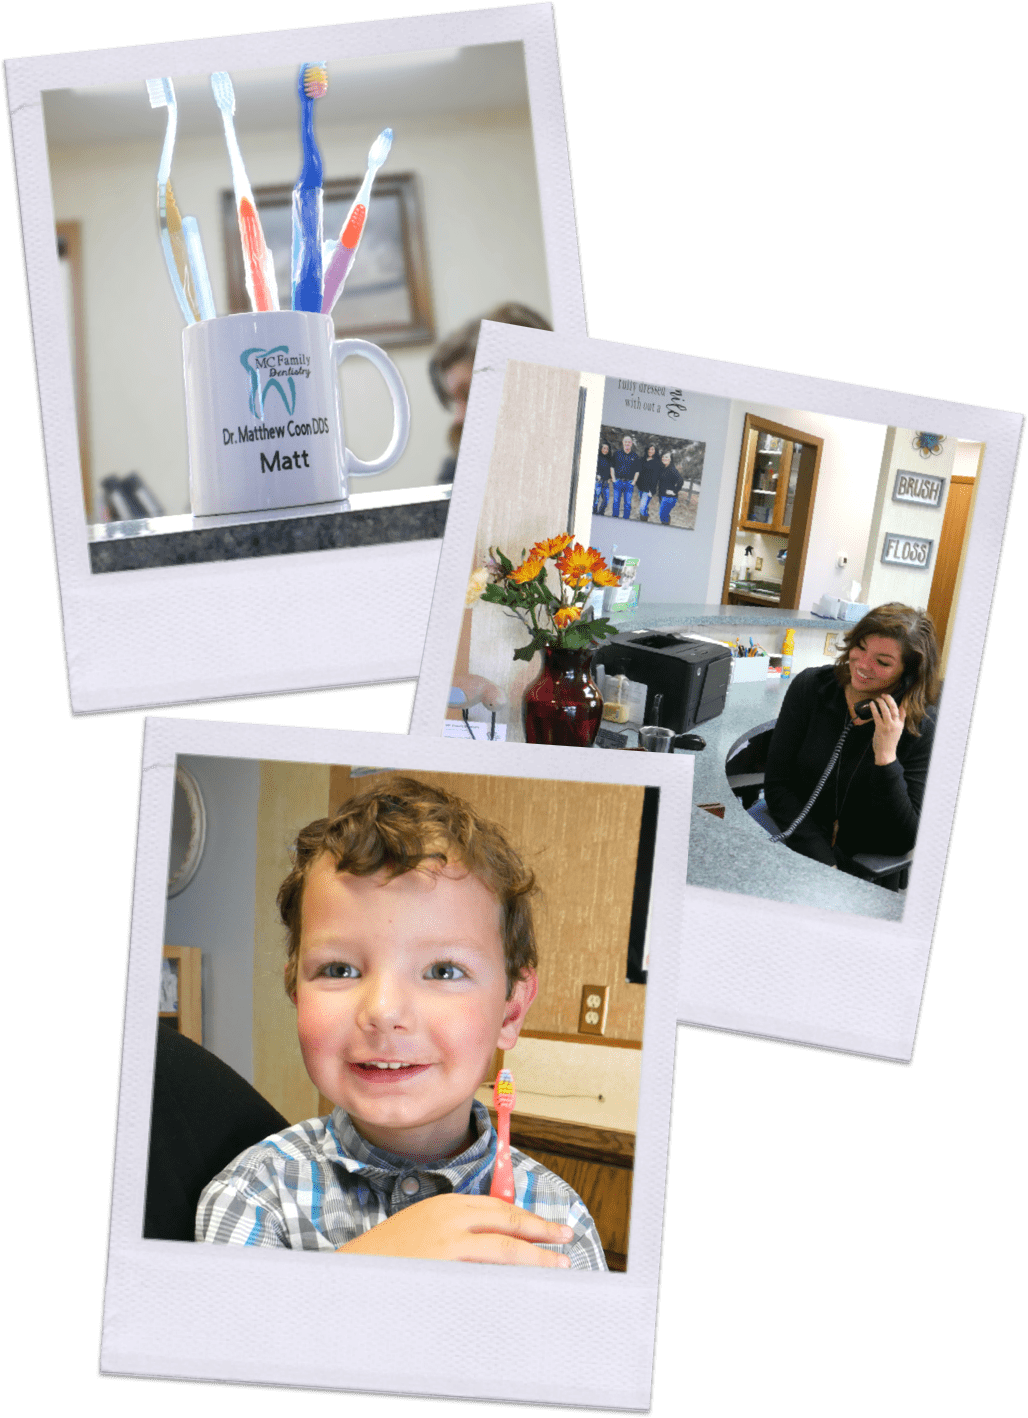 Tessa Davies, Office Manager, Mug with MC Family Dentistry logo, Young boy holding toothbrush